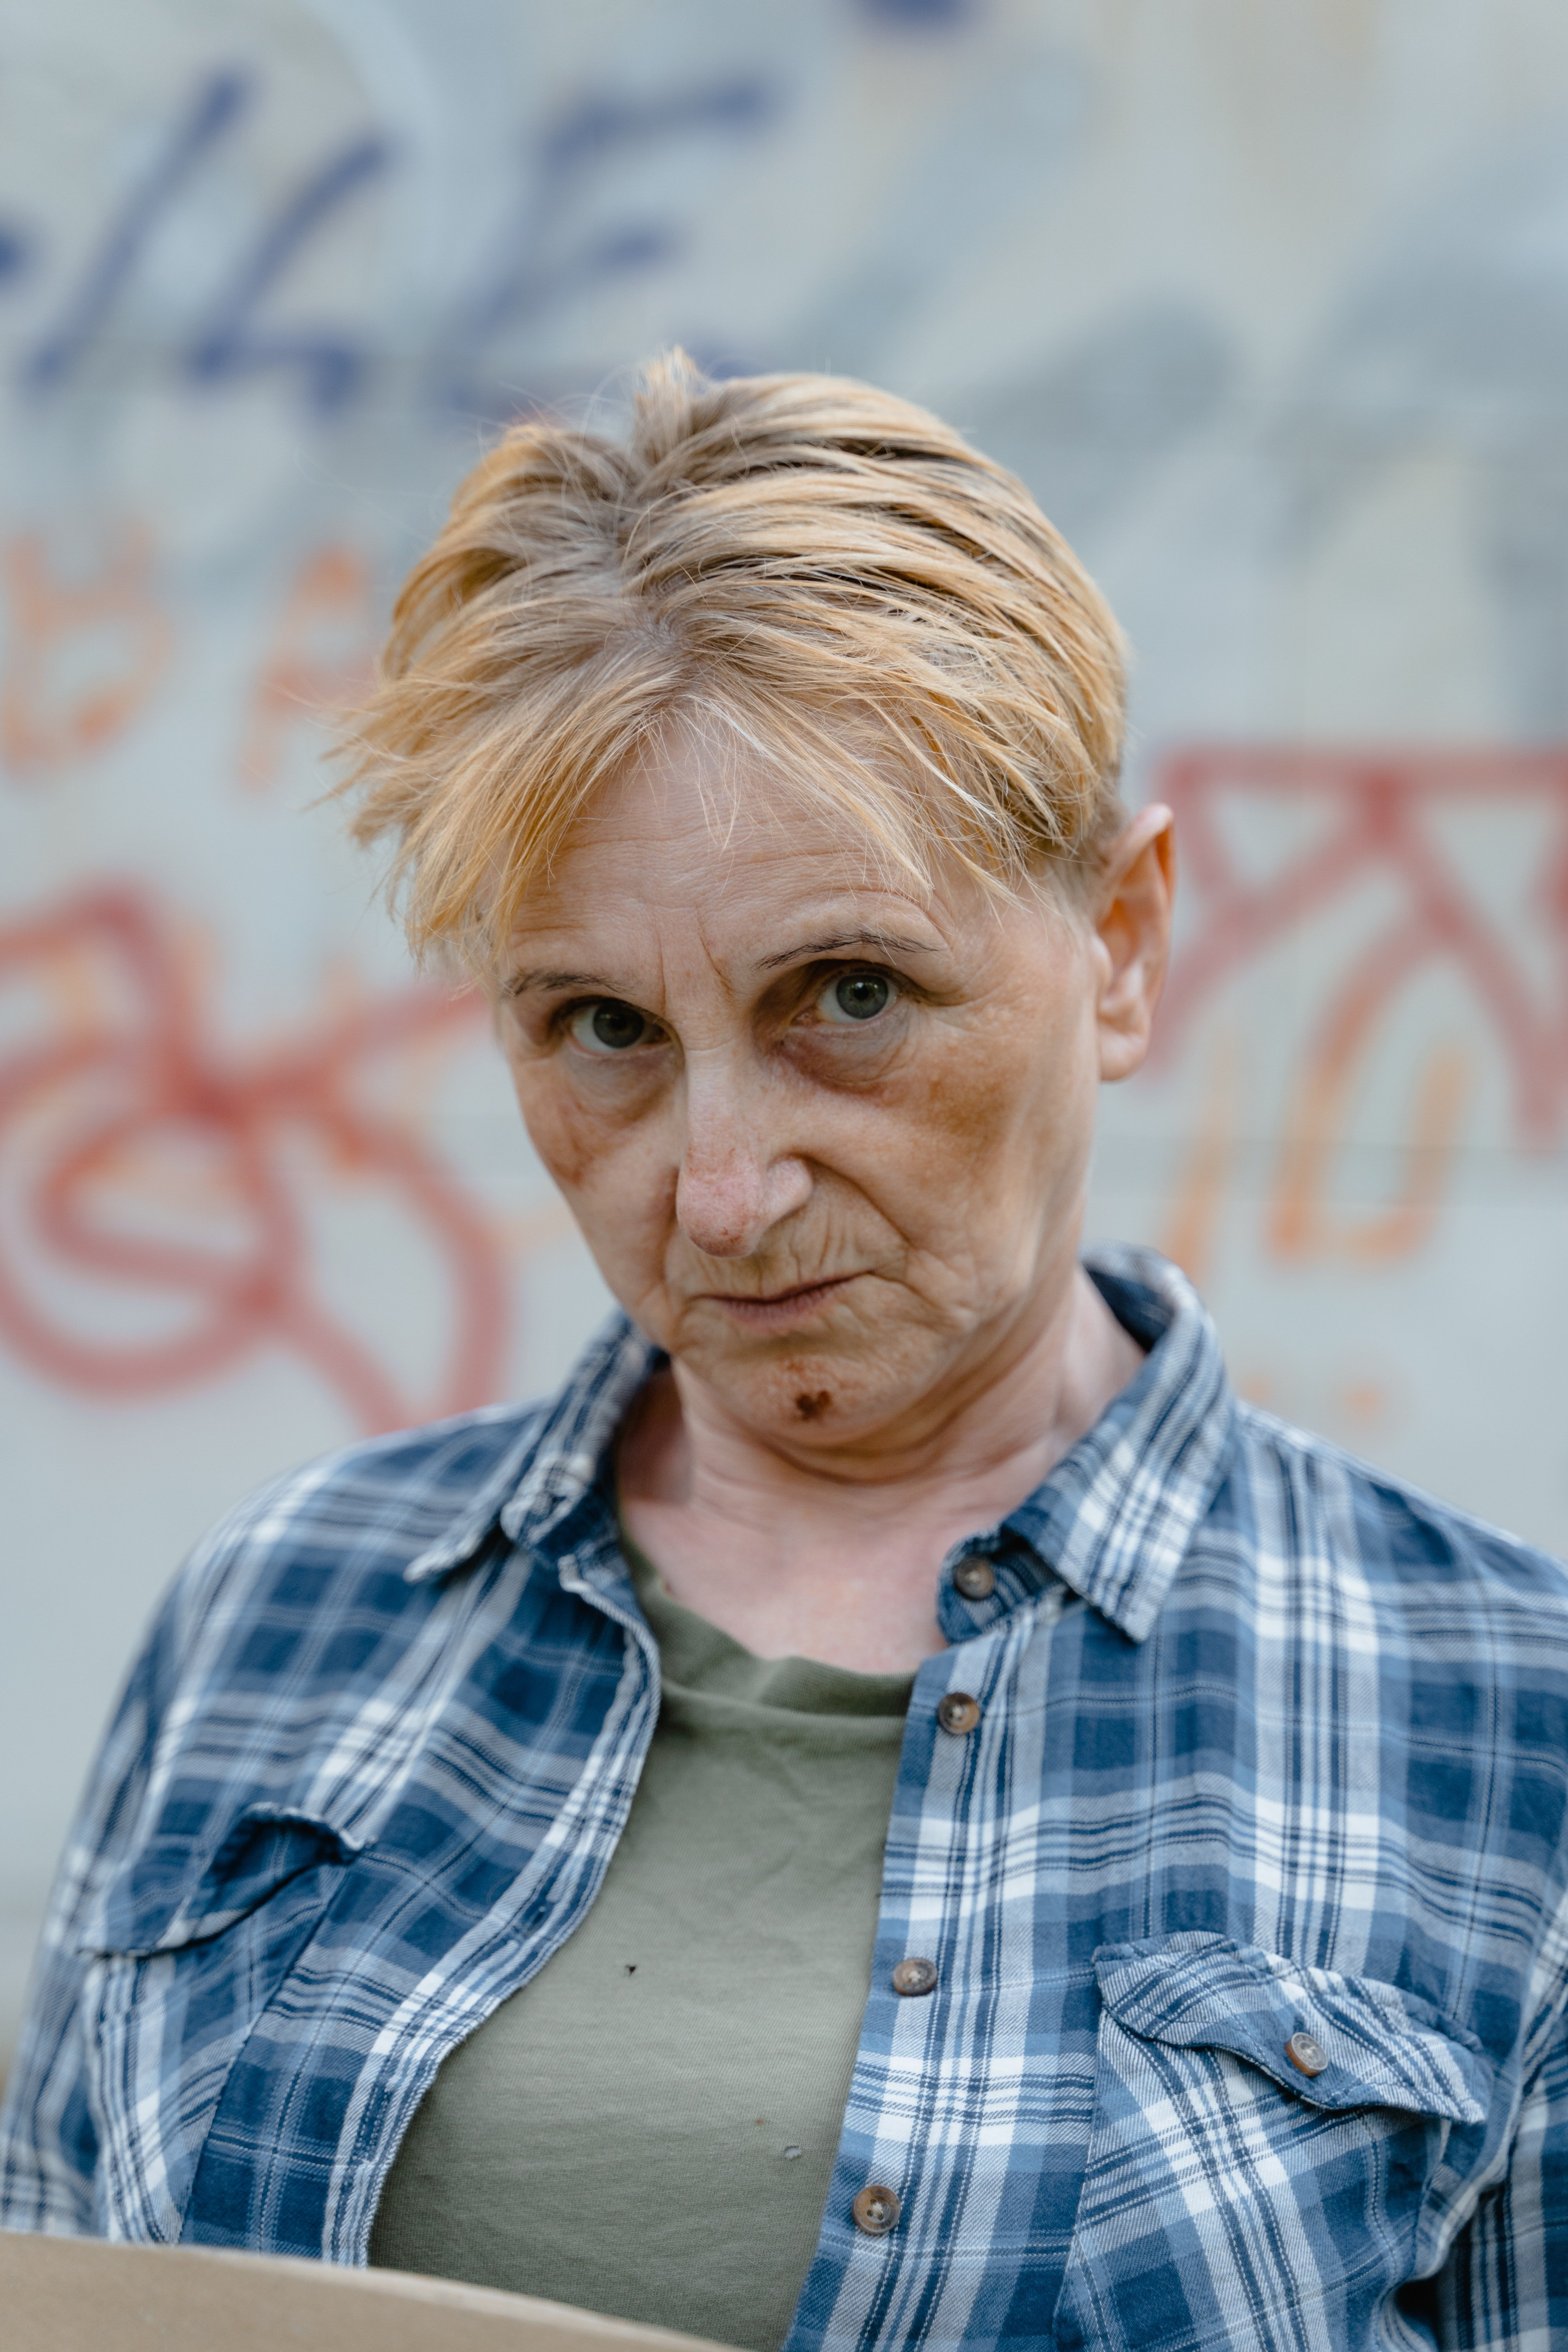 Edith was a poor homeless woman | Photo: Pexels